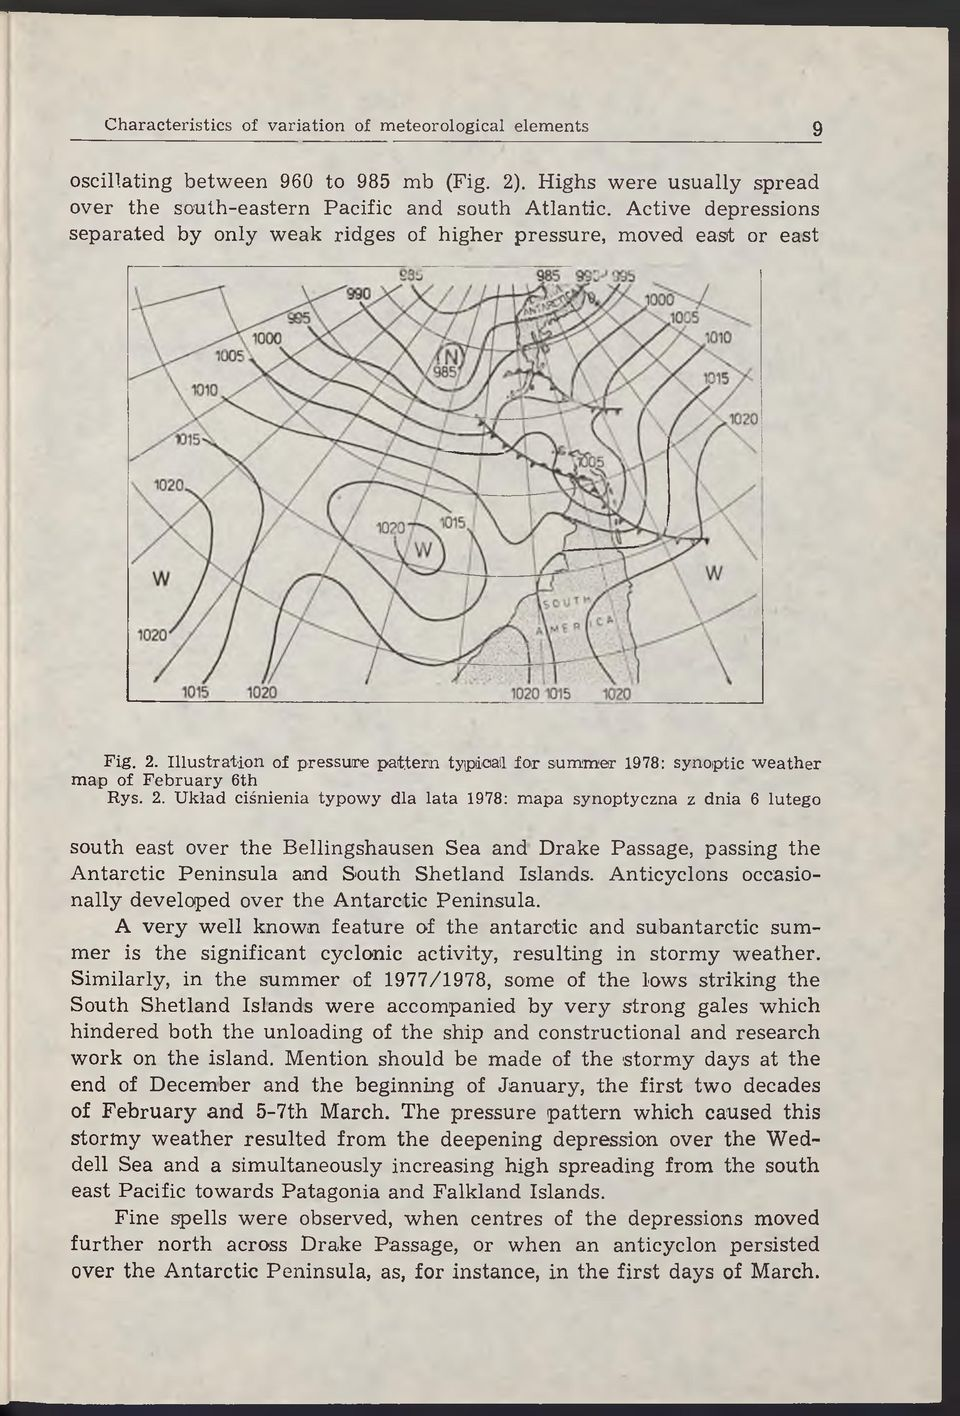 Illustration of pressure pattern tyipdoall for summer 1978: synoptic weather map of February 6th Rys. 2.